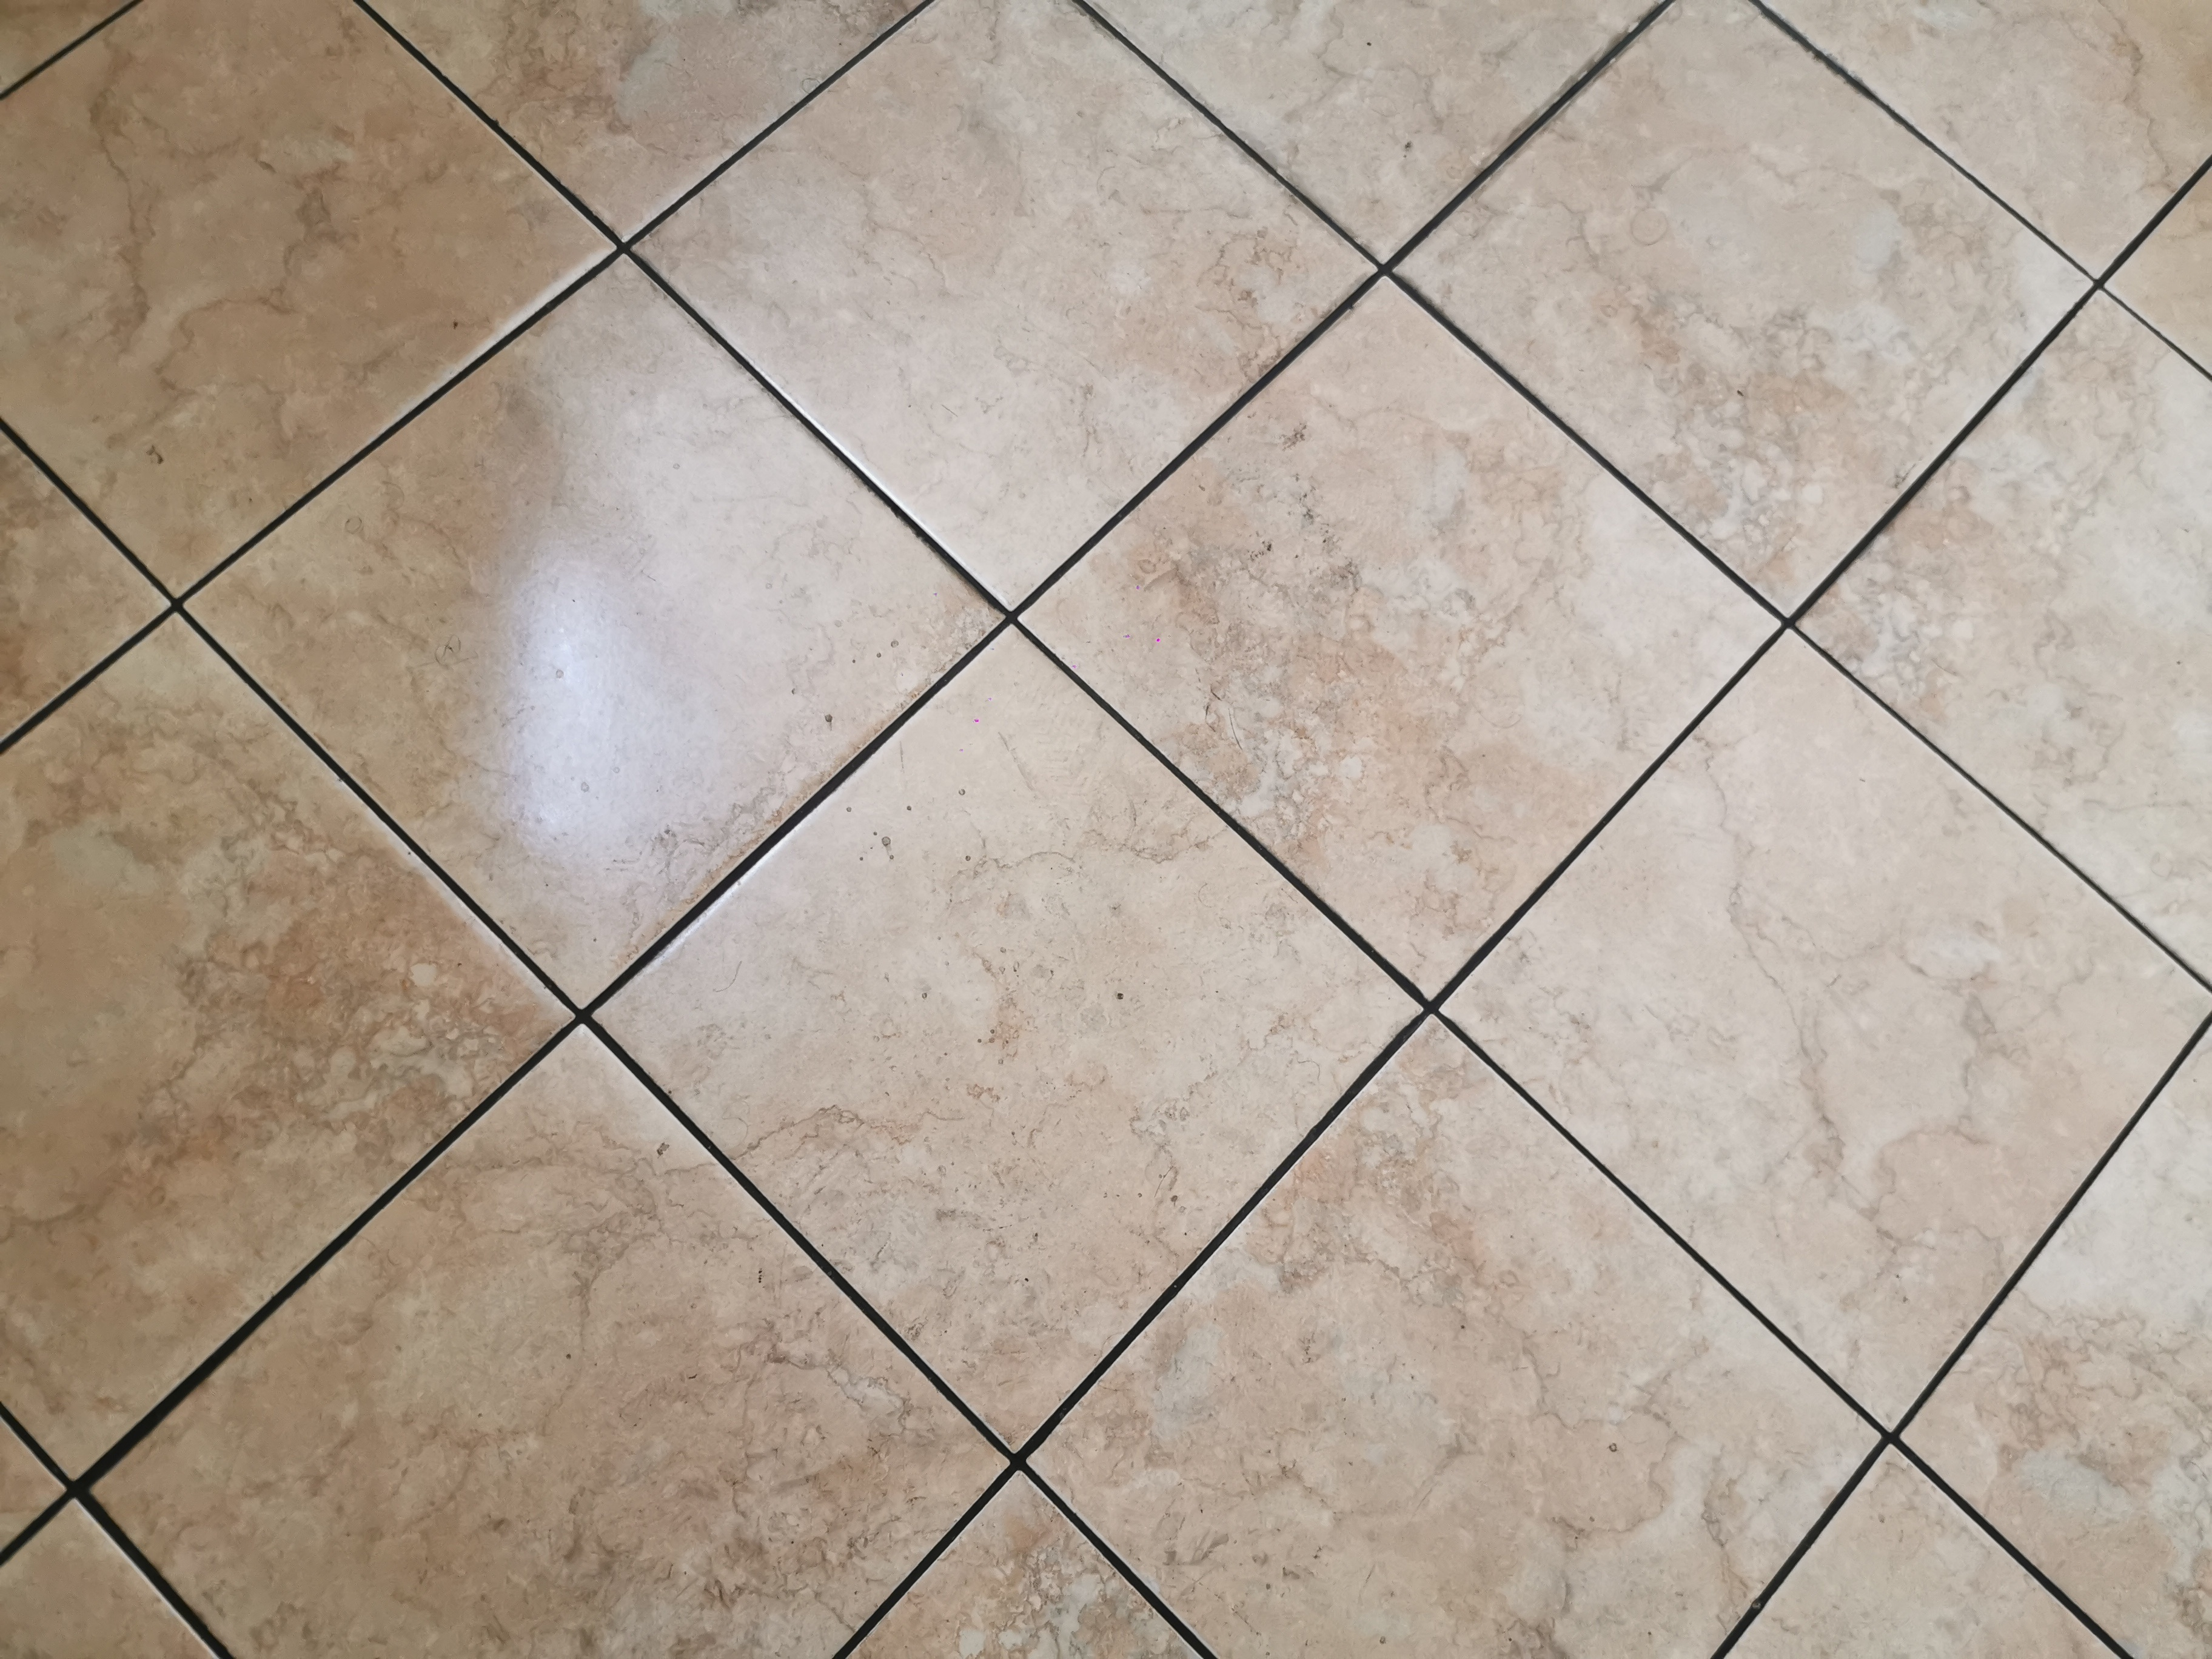 how to identify different types of tile and stone flooring